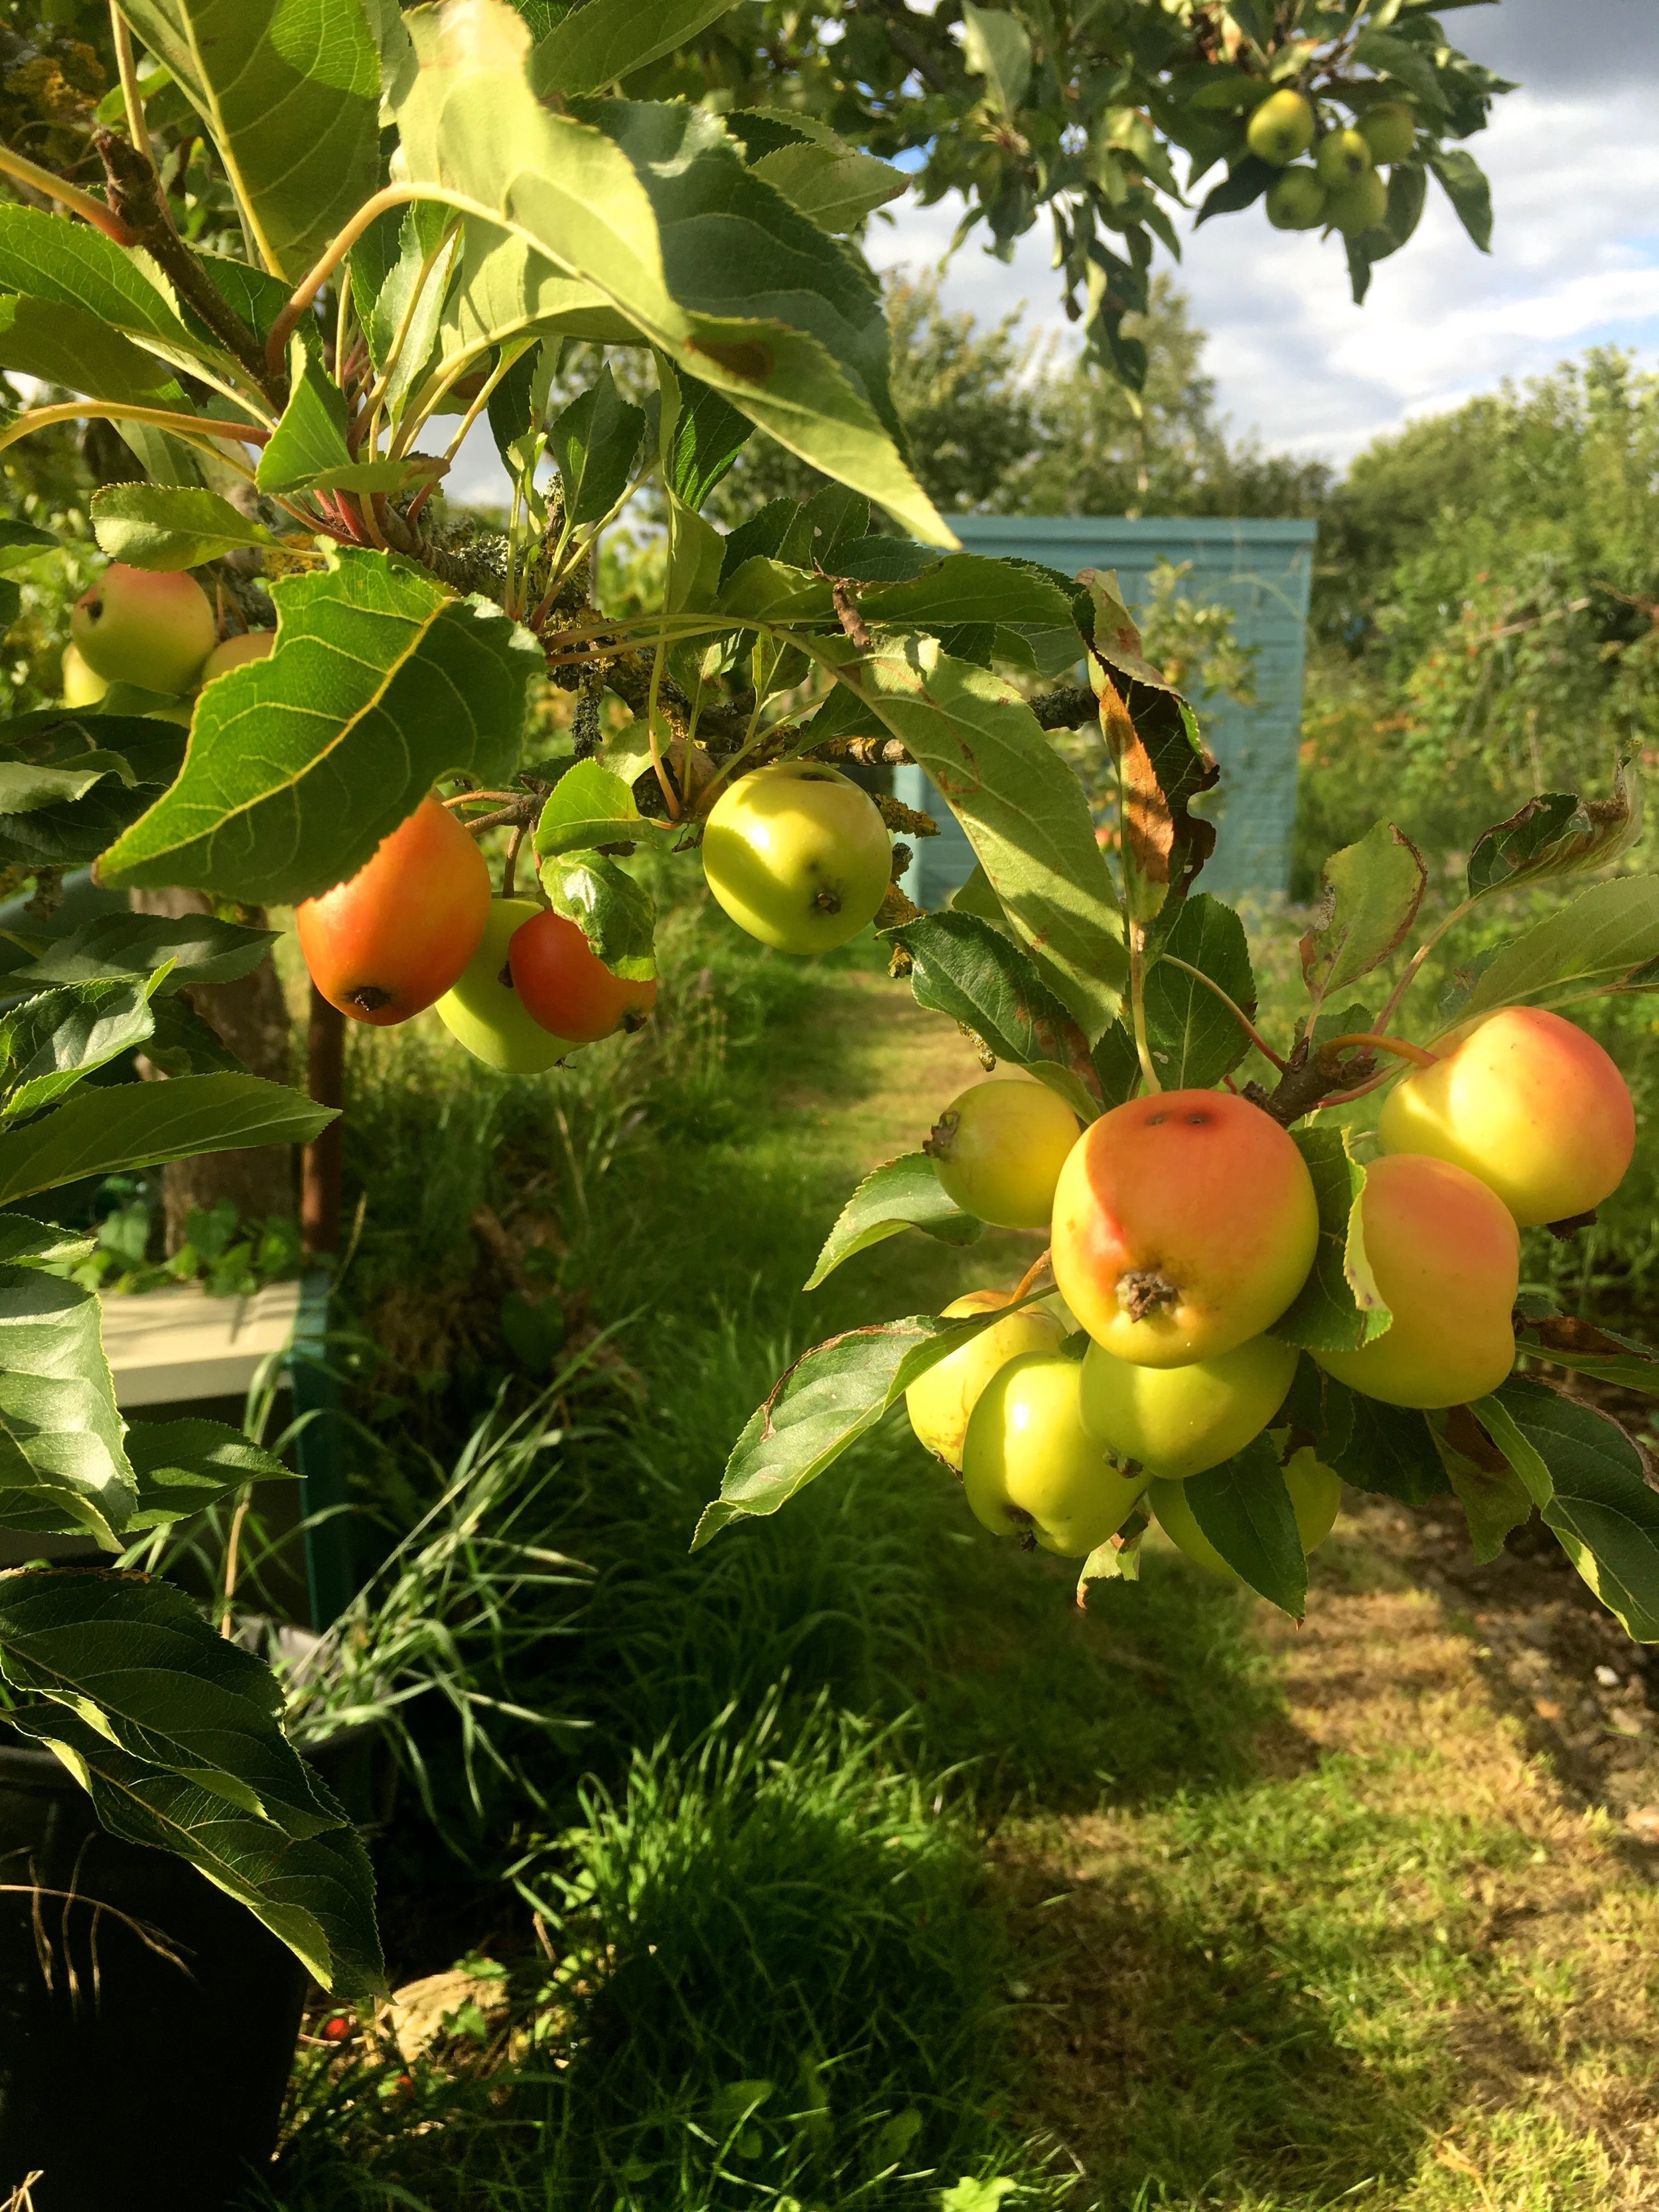 the sky was darkening as I took photos of the crab apples